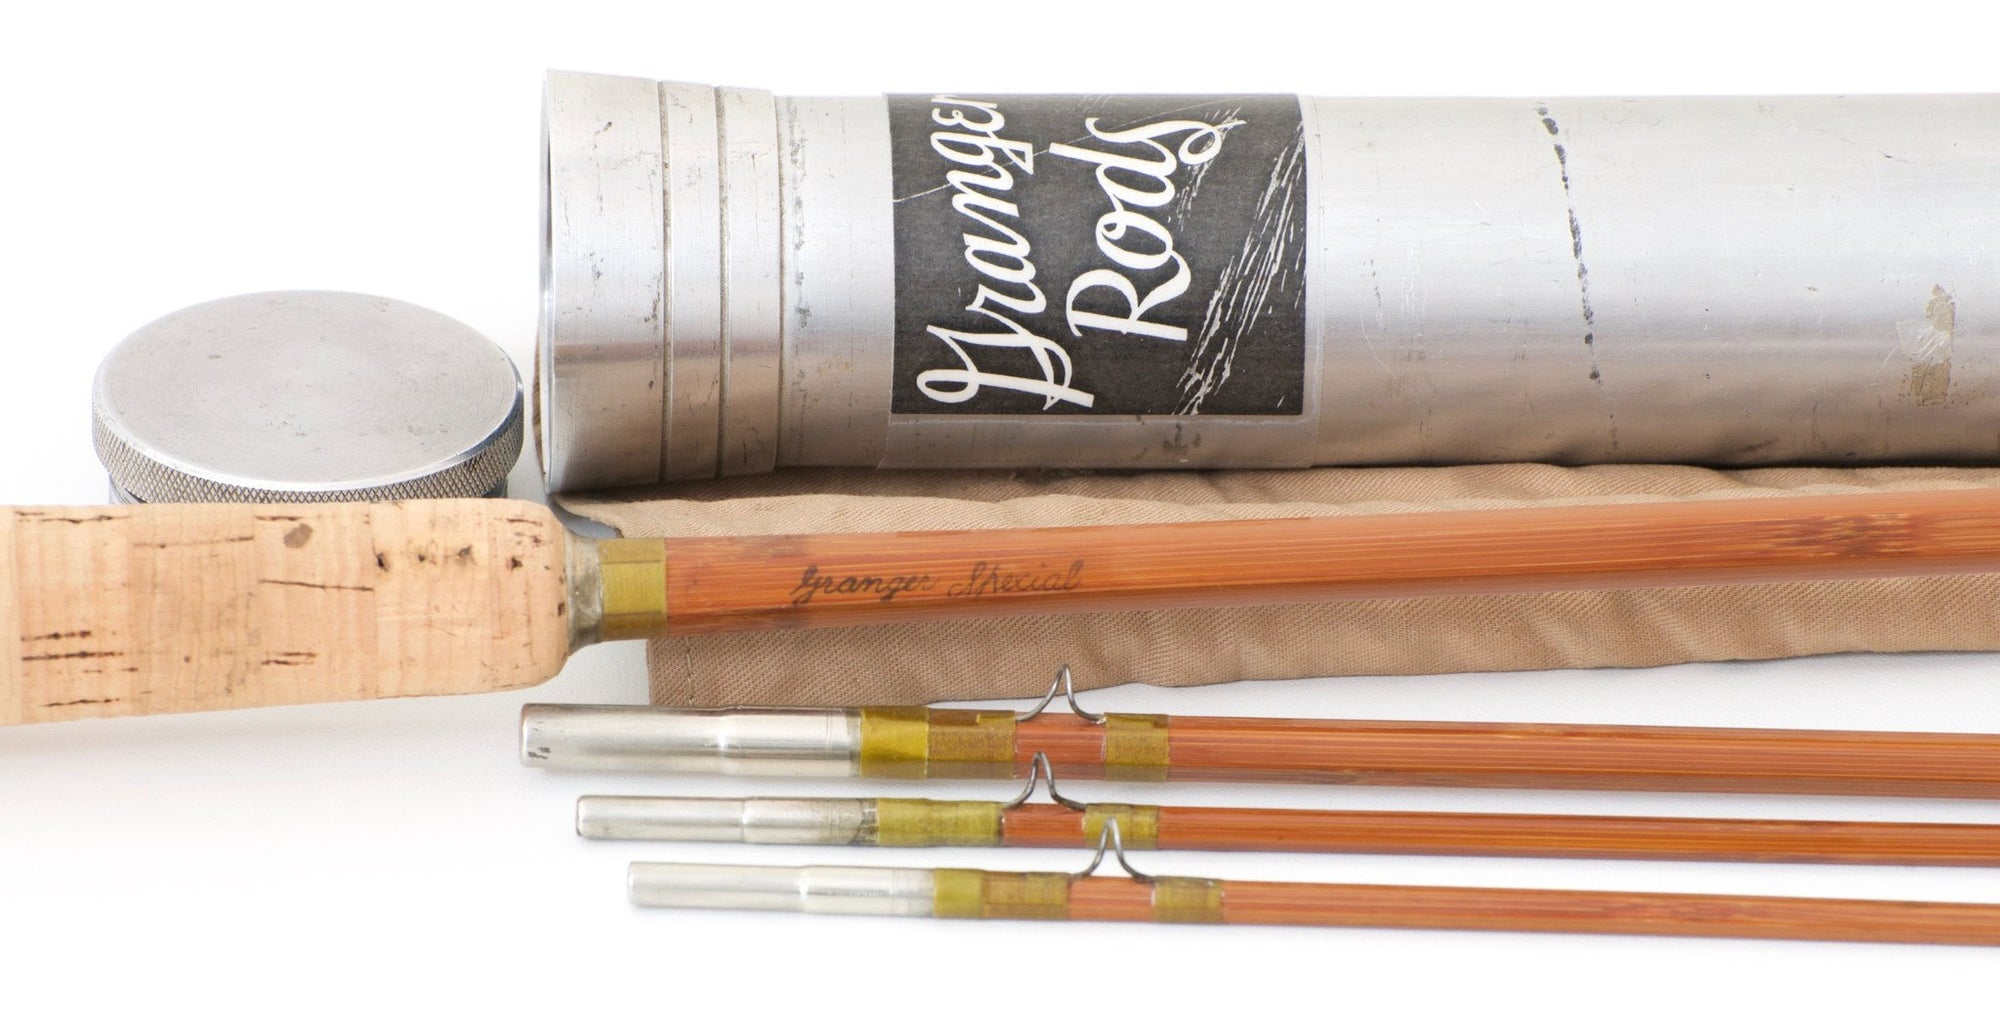 Goodwin Granger - Special Model 9050 Bamboo Rod